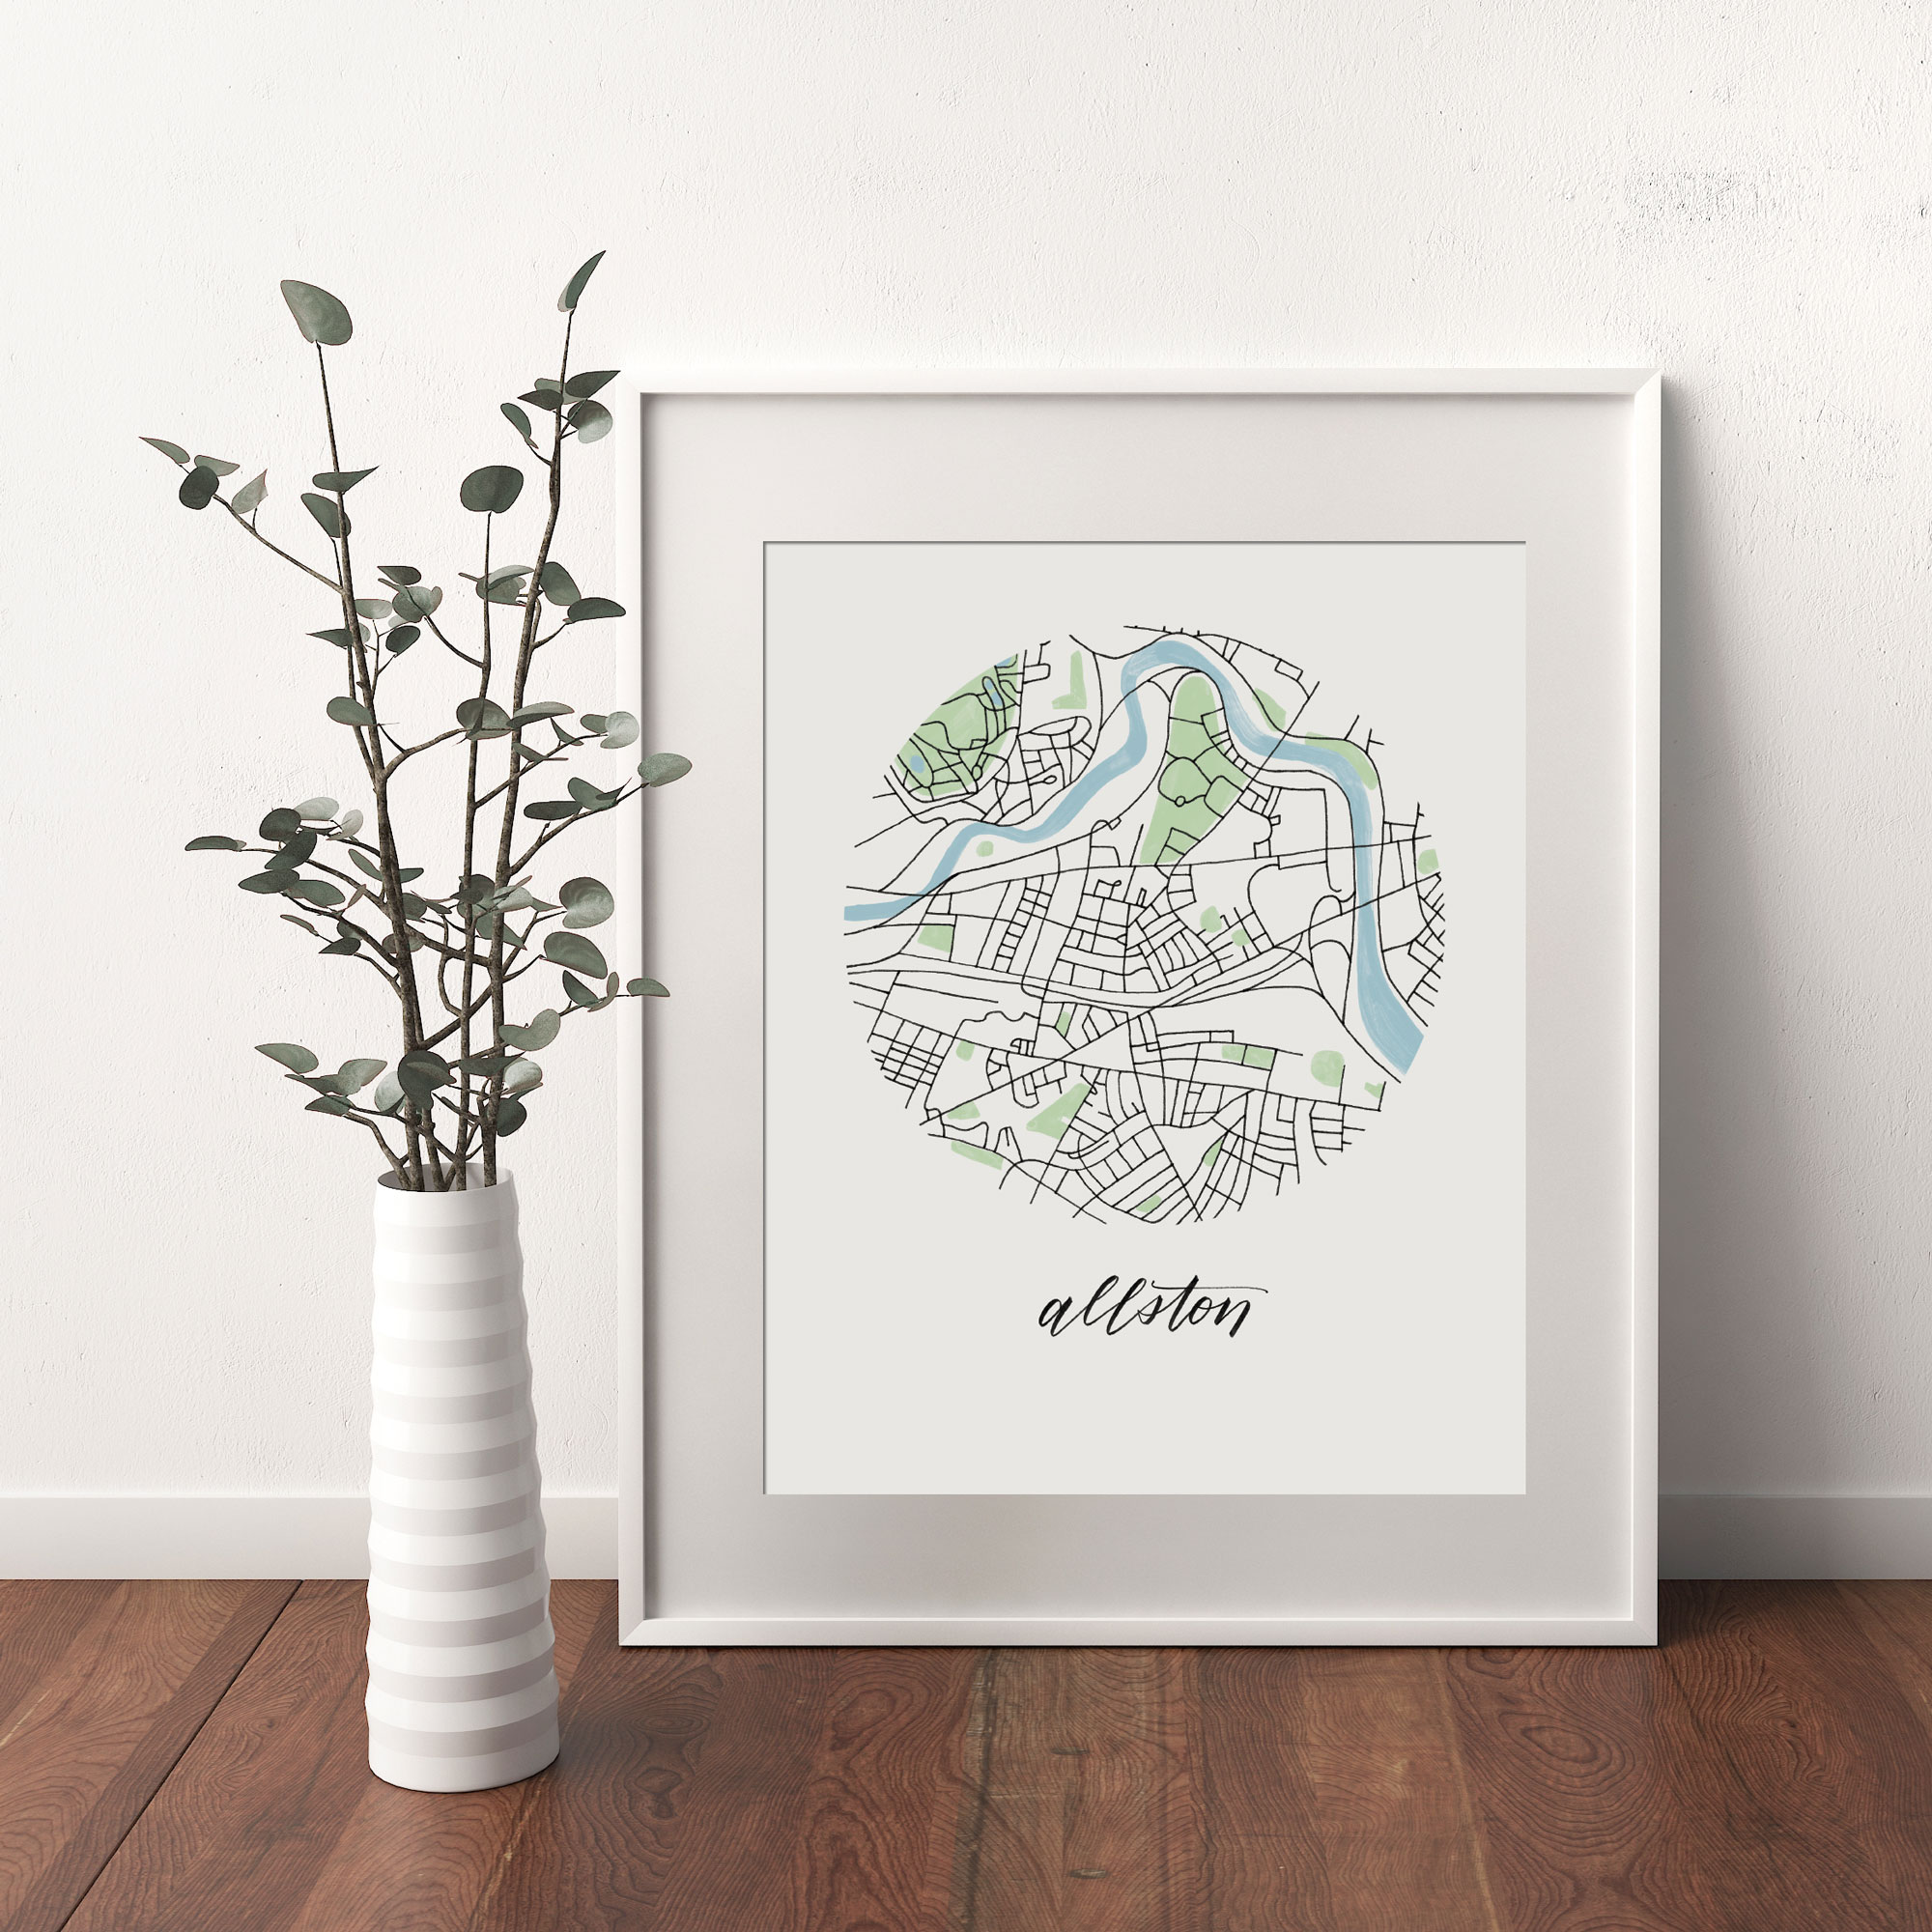 Allston, Boston Map print framed and leaning on white wall next to dried leaves in a vase